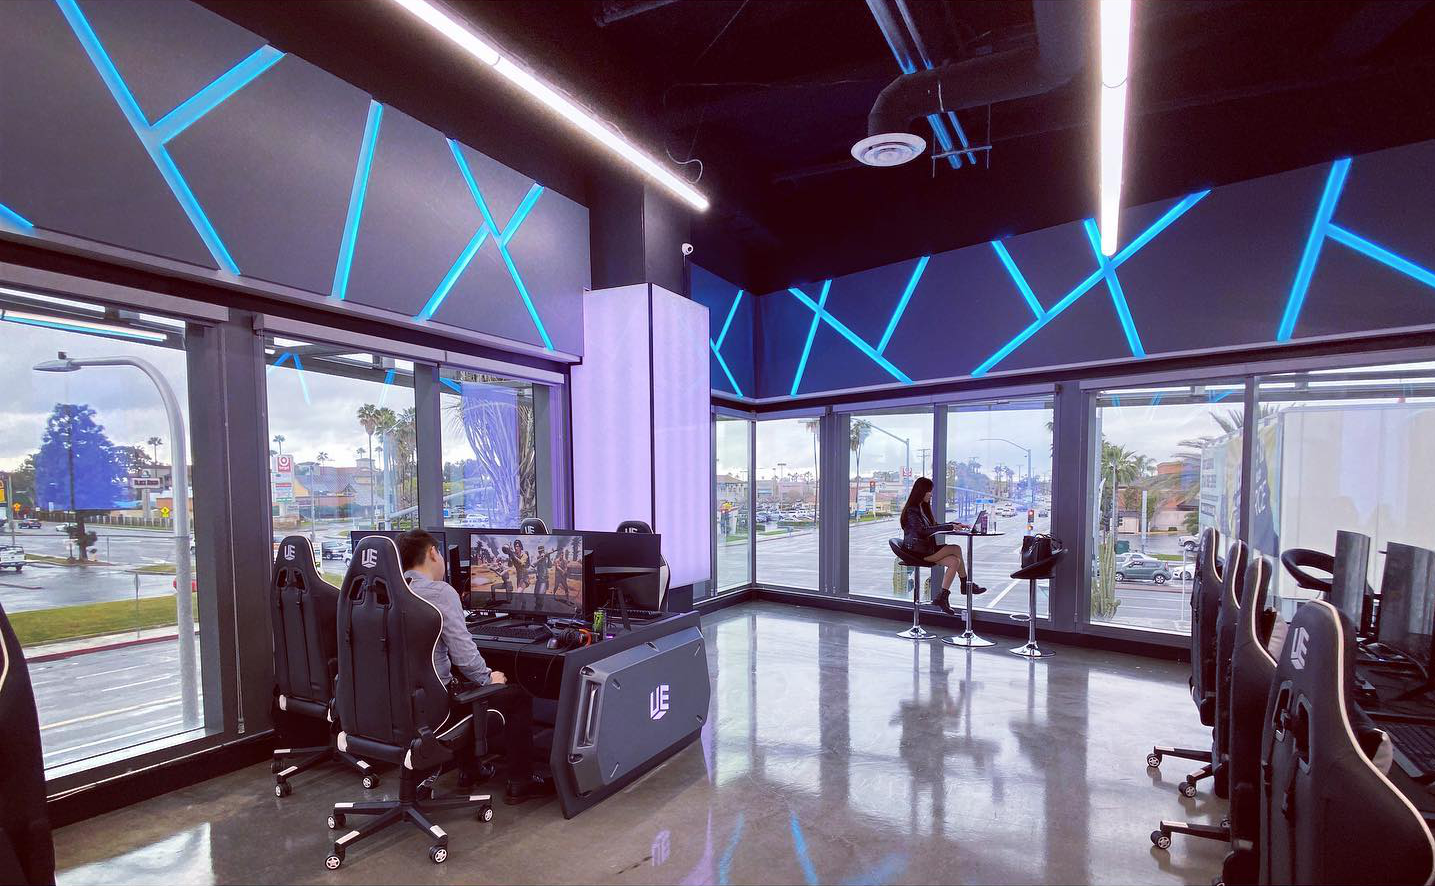 Ultimate Esport is the industry standard for esports venue cleanliness